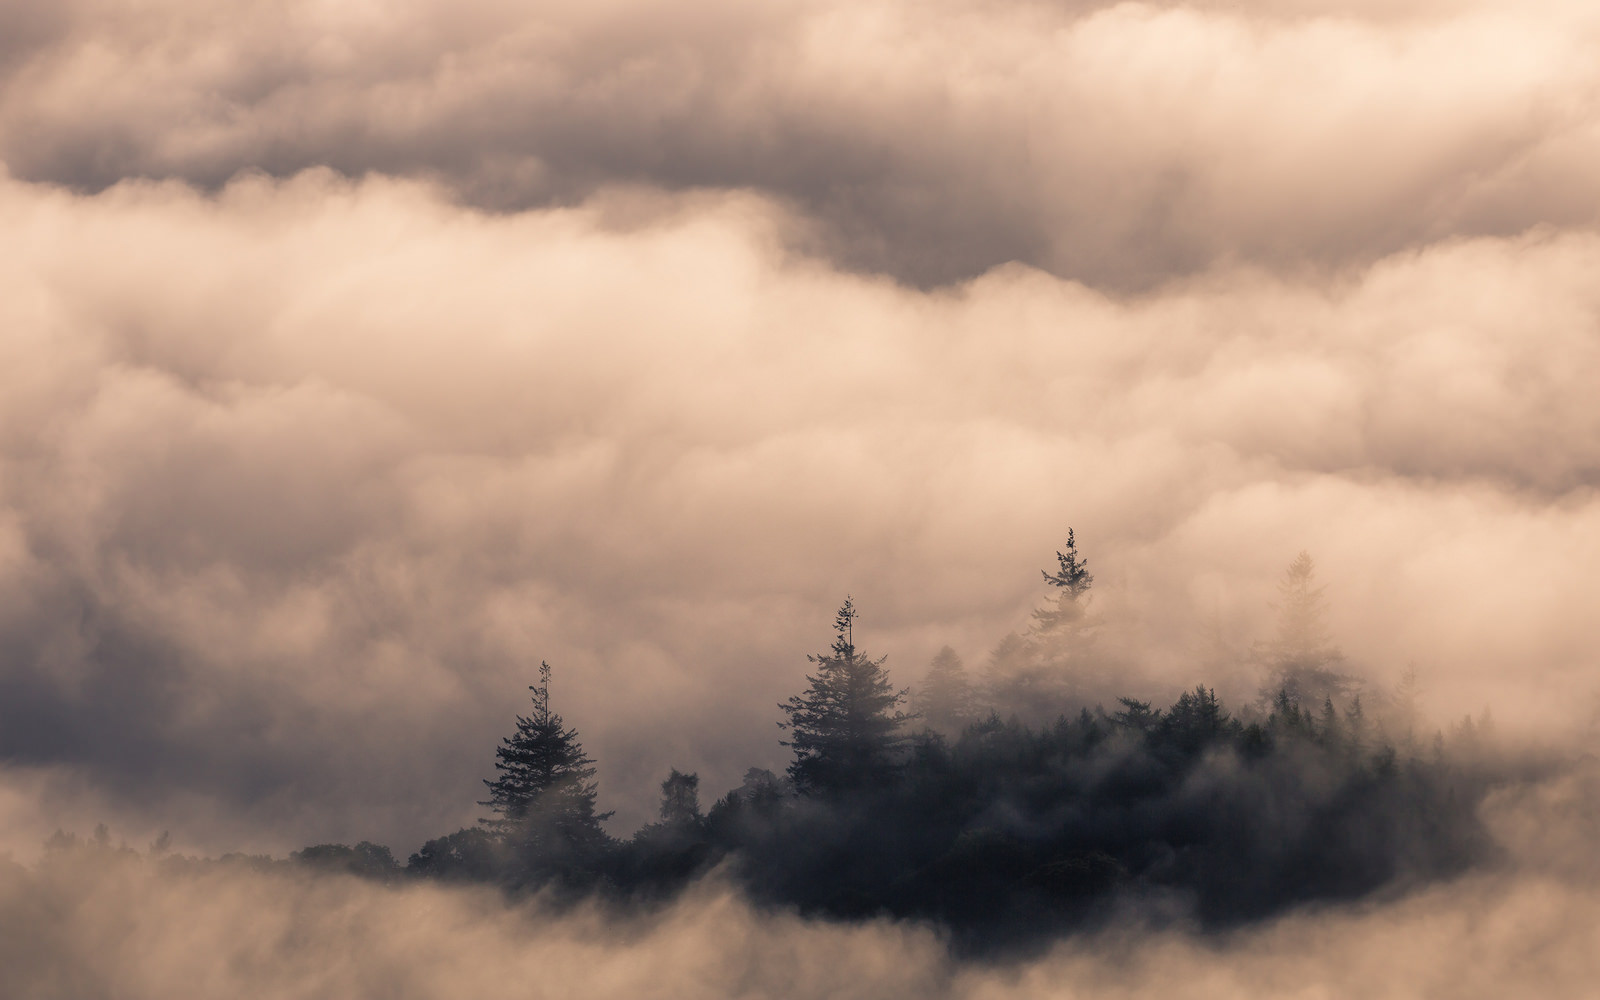 An island on Derwent Water looking sublime through the cloud